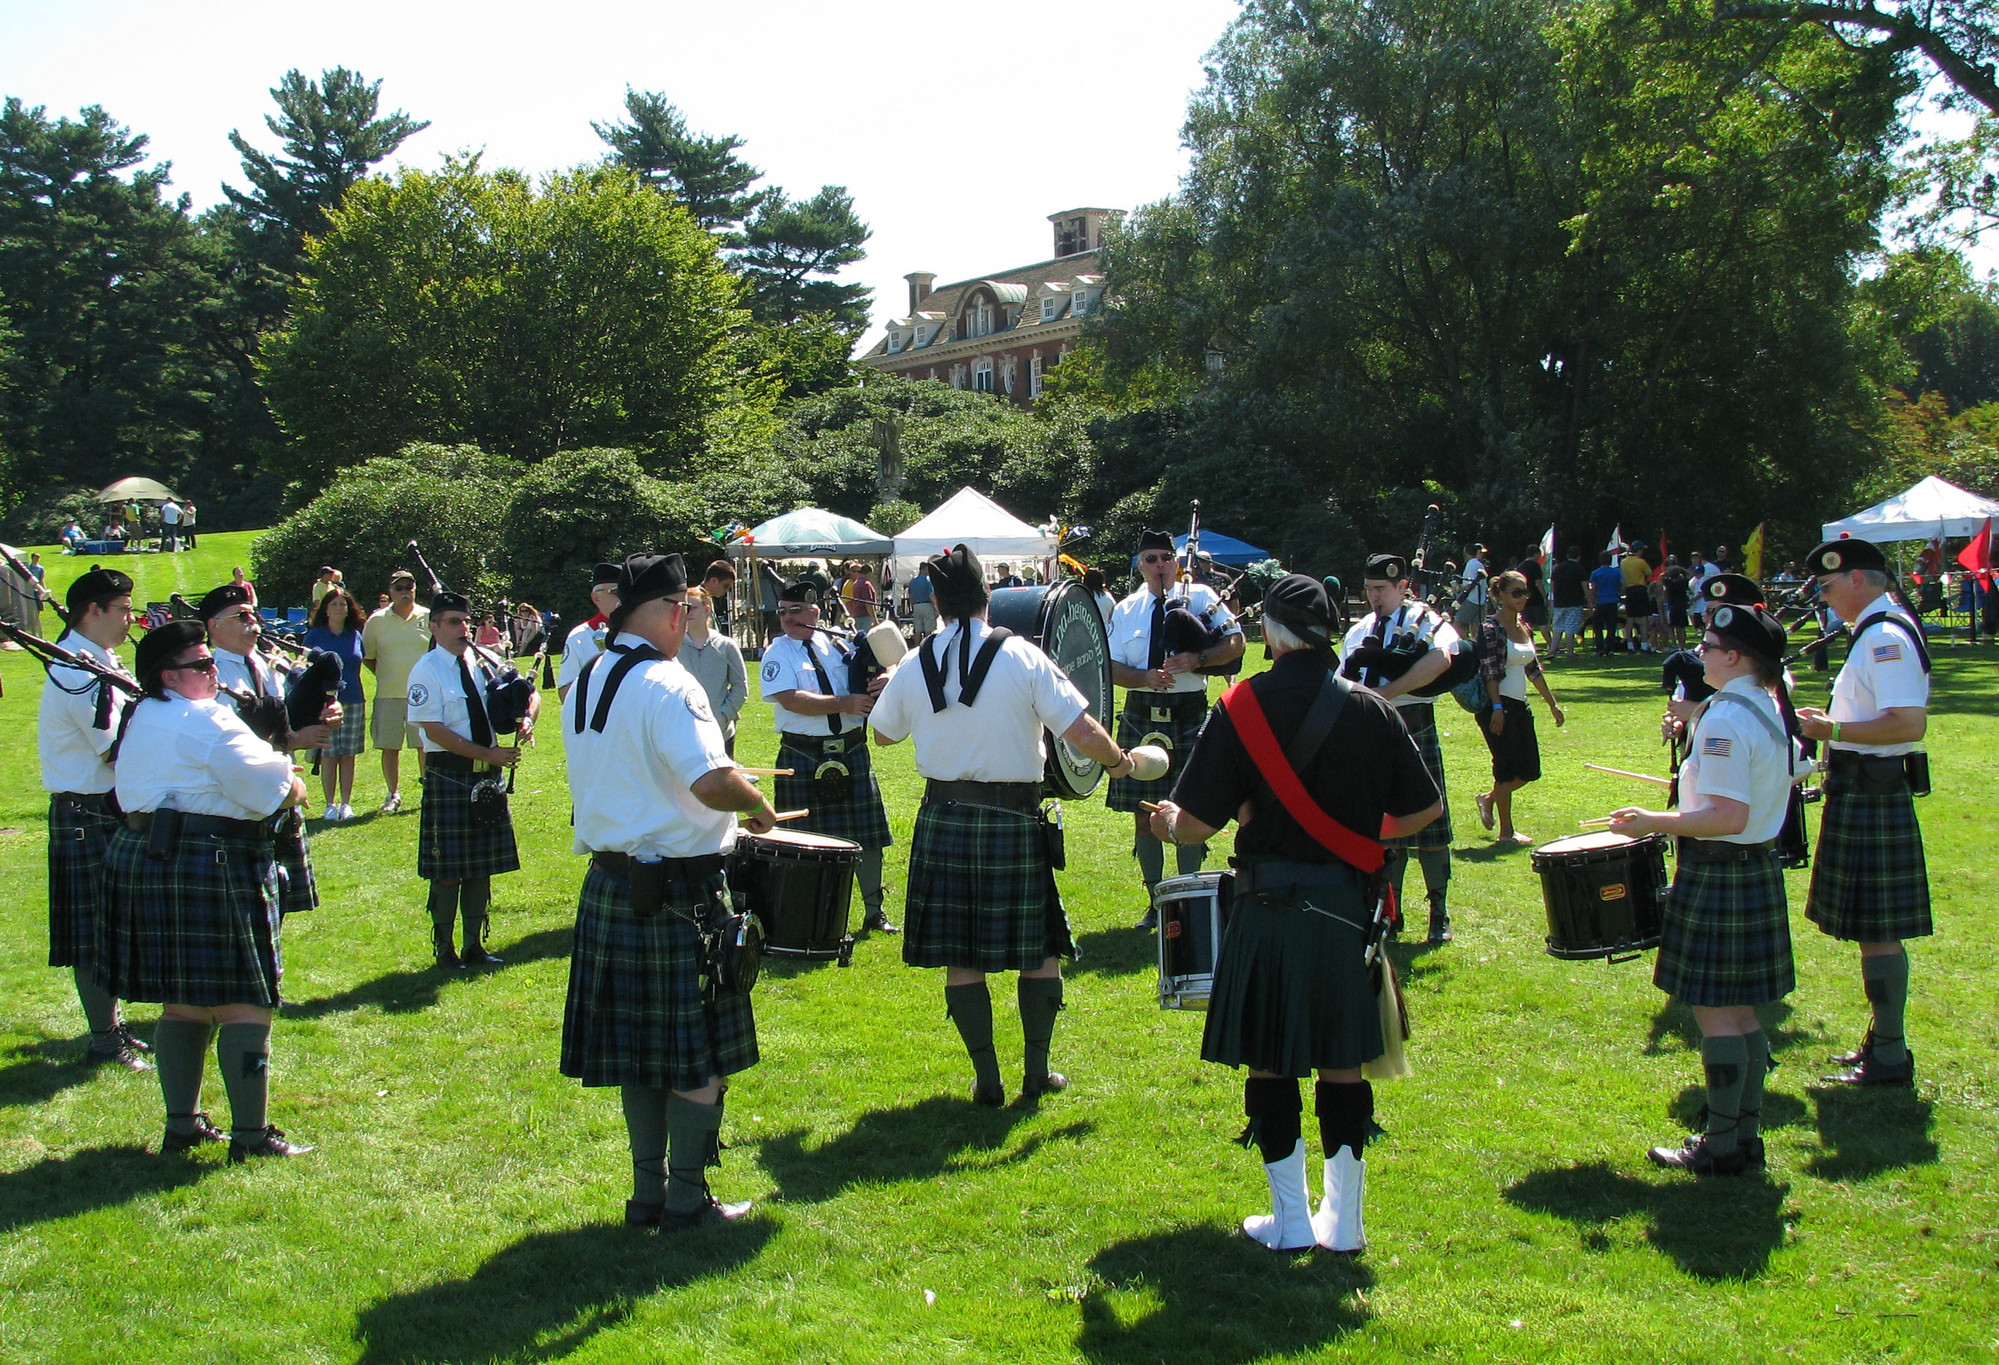 Old Westbury Gardens once again opens its expansive grounds to the Scottish Games and Highland Gala on Saturday, Aug. 24.